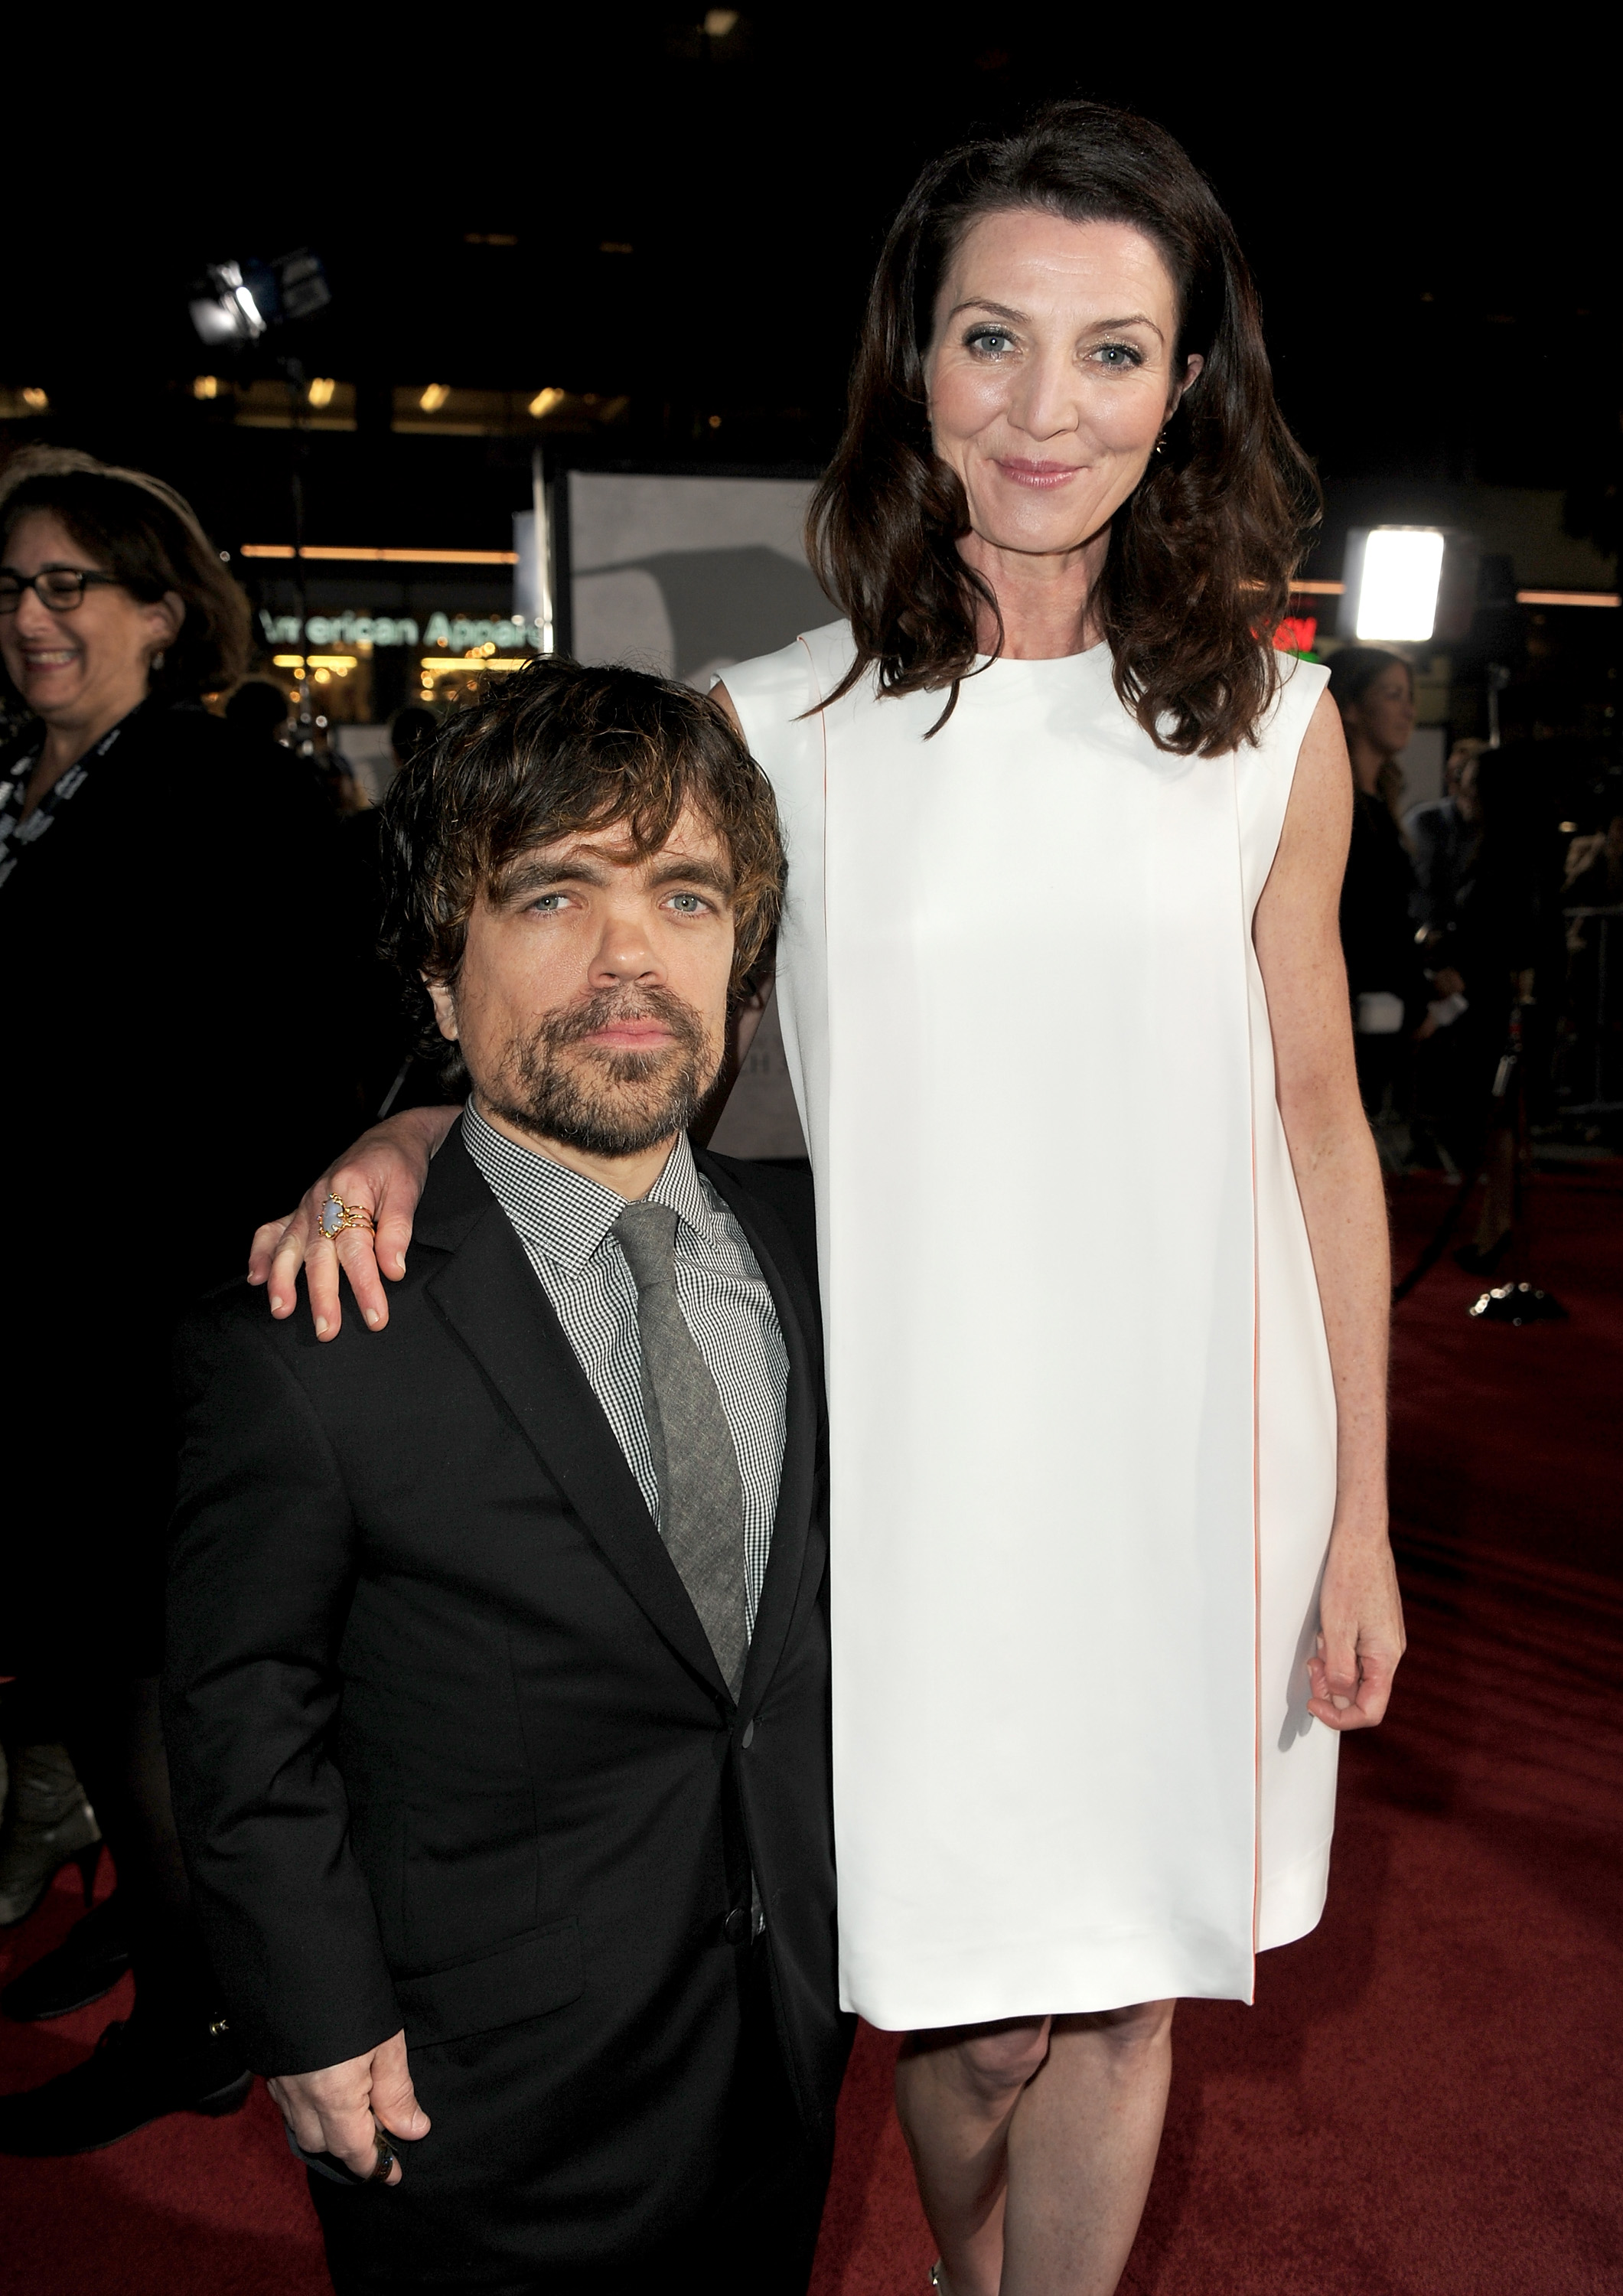 Peter Dinklage posed with Michelle Fairley.